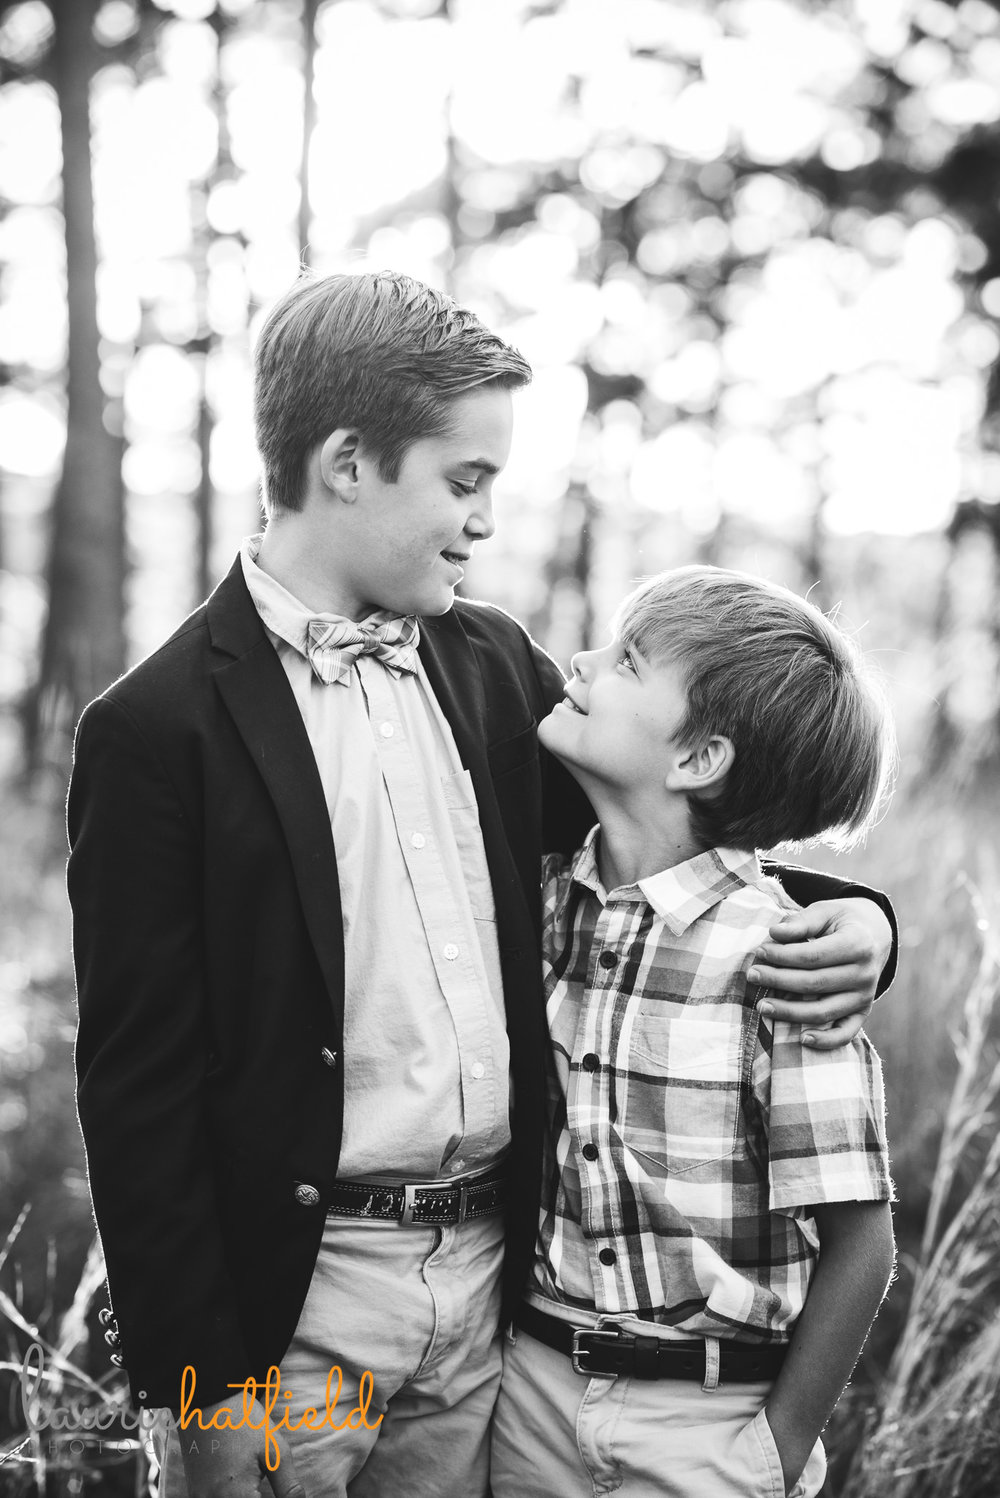 big brother and little brother | Mobile Alabama family photographer